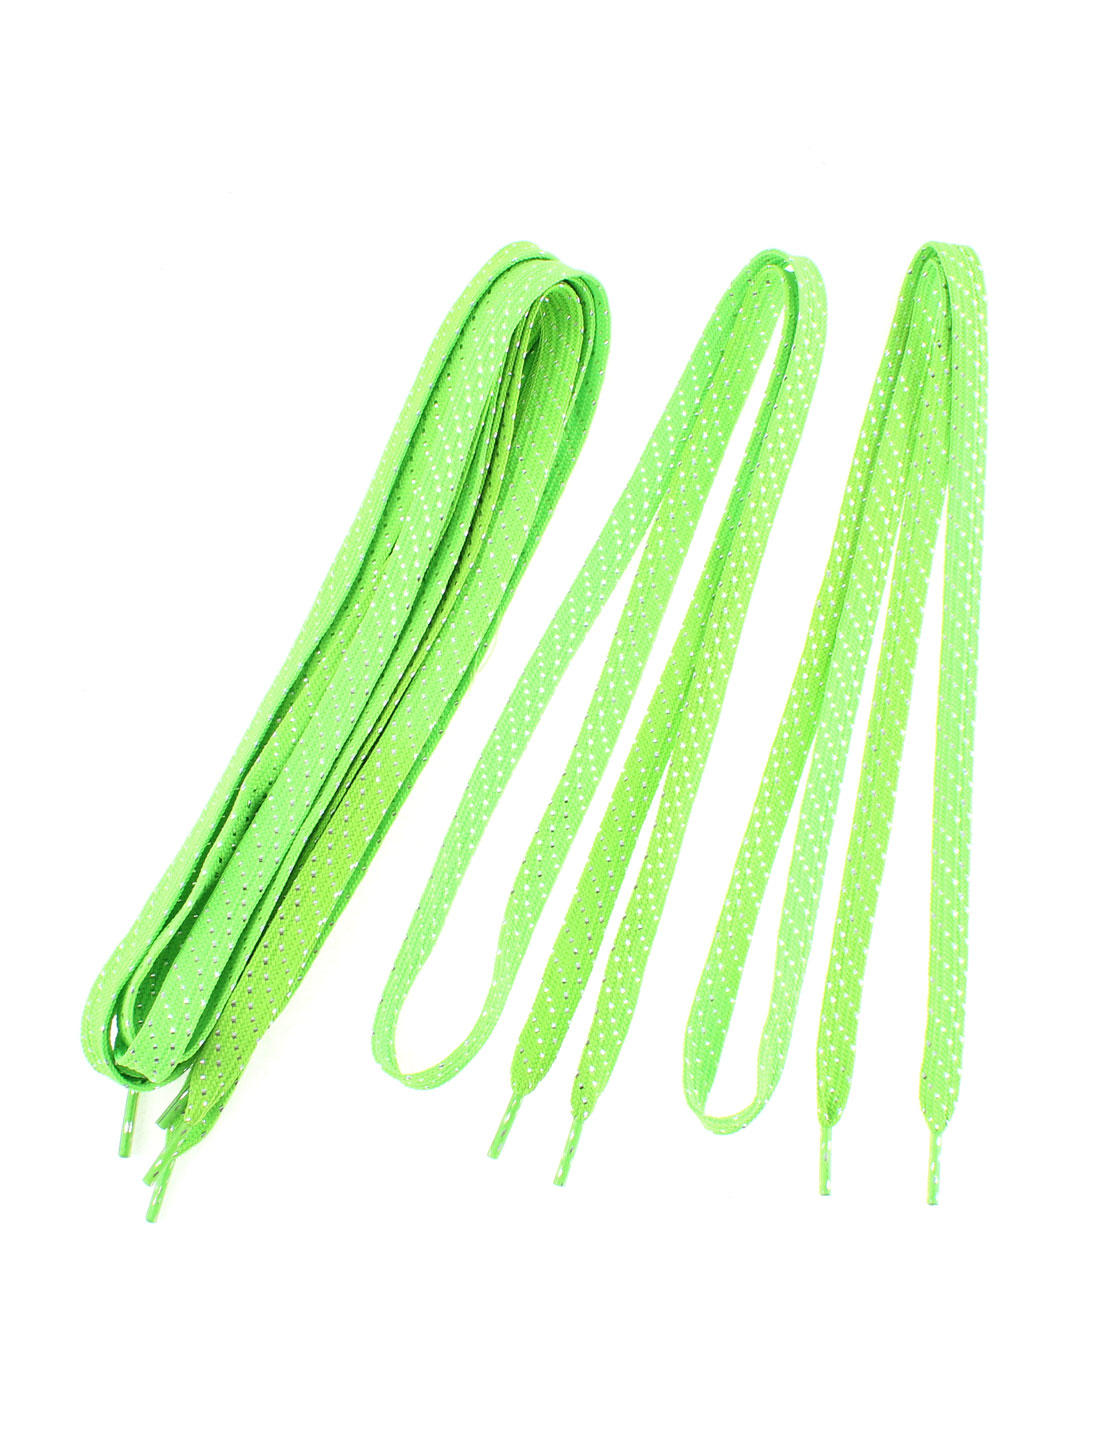 Sneakers Sport Shoes Cotton Blend Flat Shoestring Shoelaces Green 3 Pairs